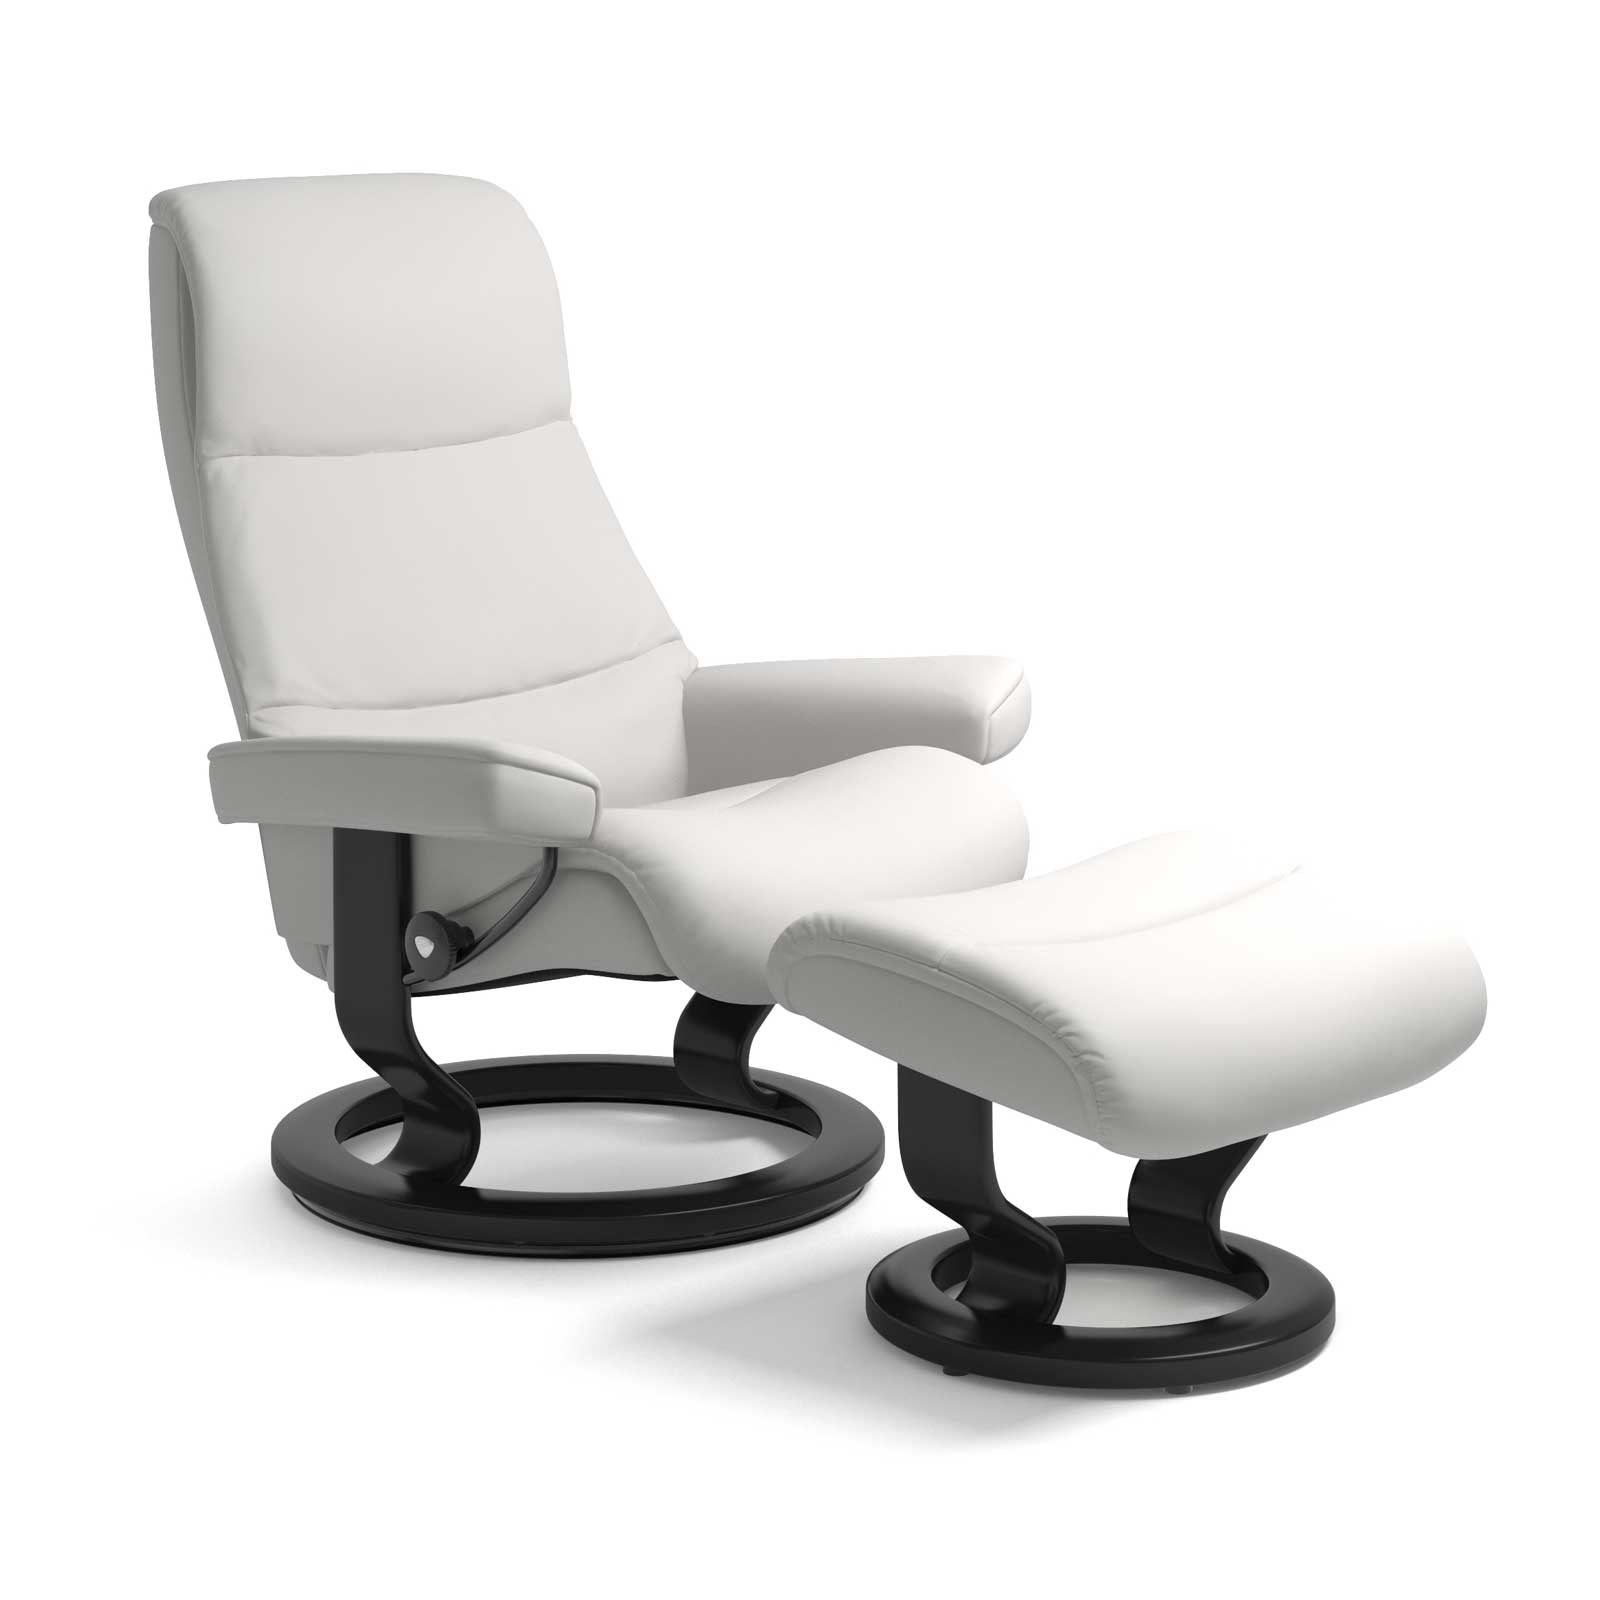 Sessel Mit Liegefunktion Modern Stressless Sessel View Classic Batick Snow Mit Hocker